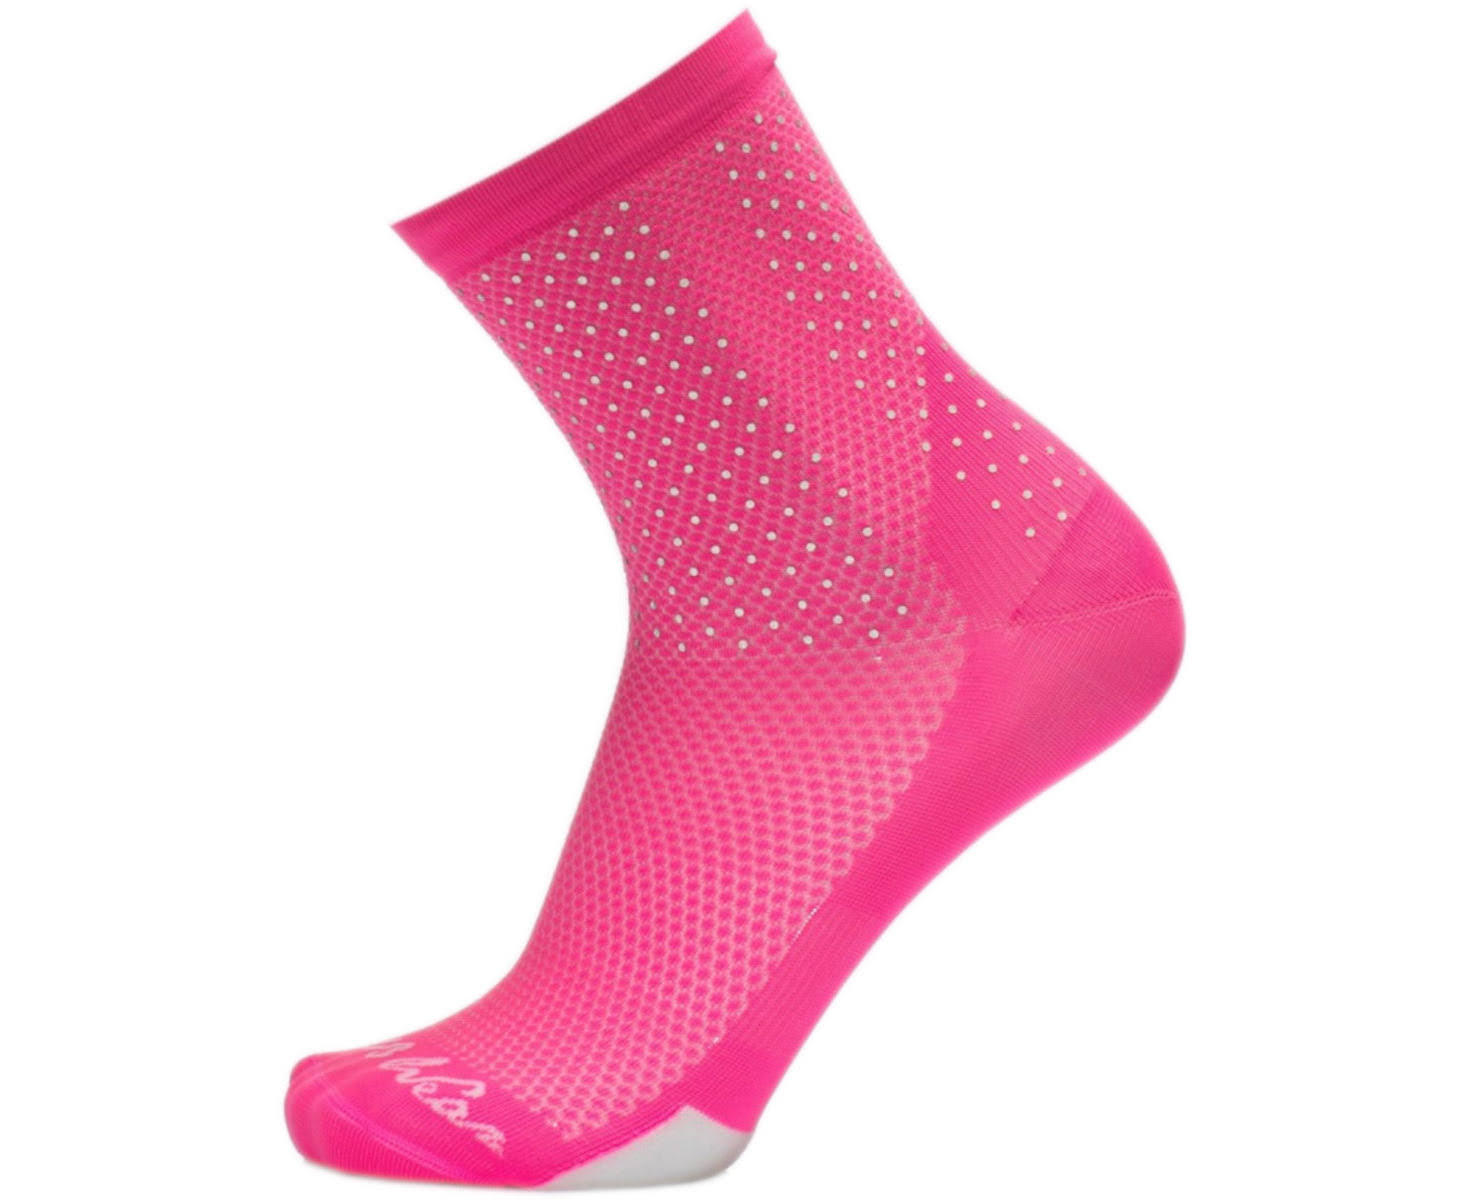 MB Wear Reflective Socks Pink S-M (35-40)